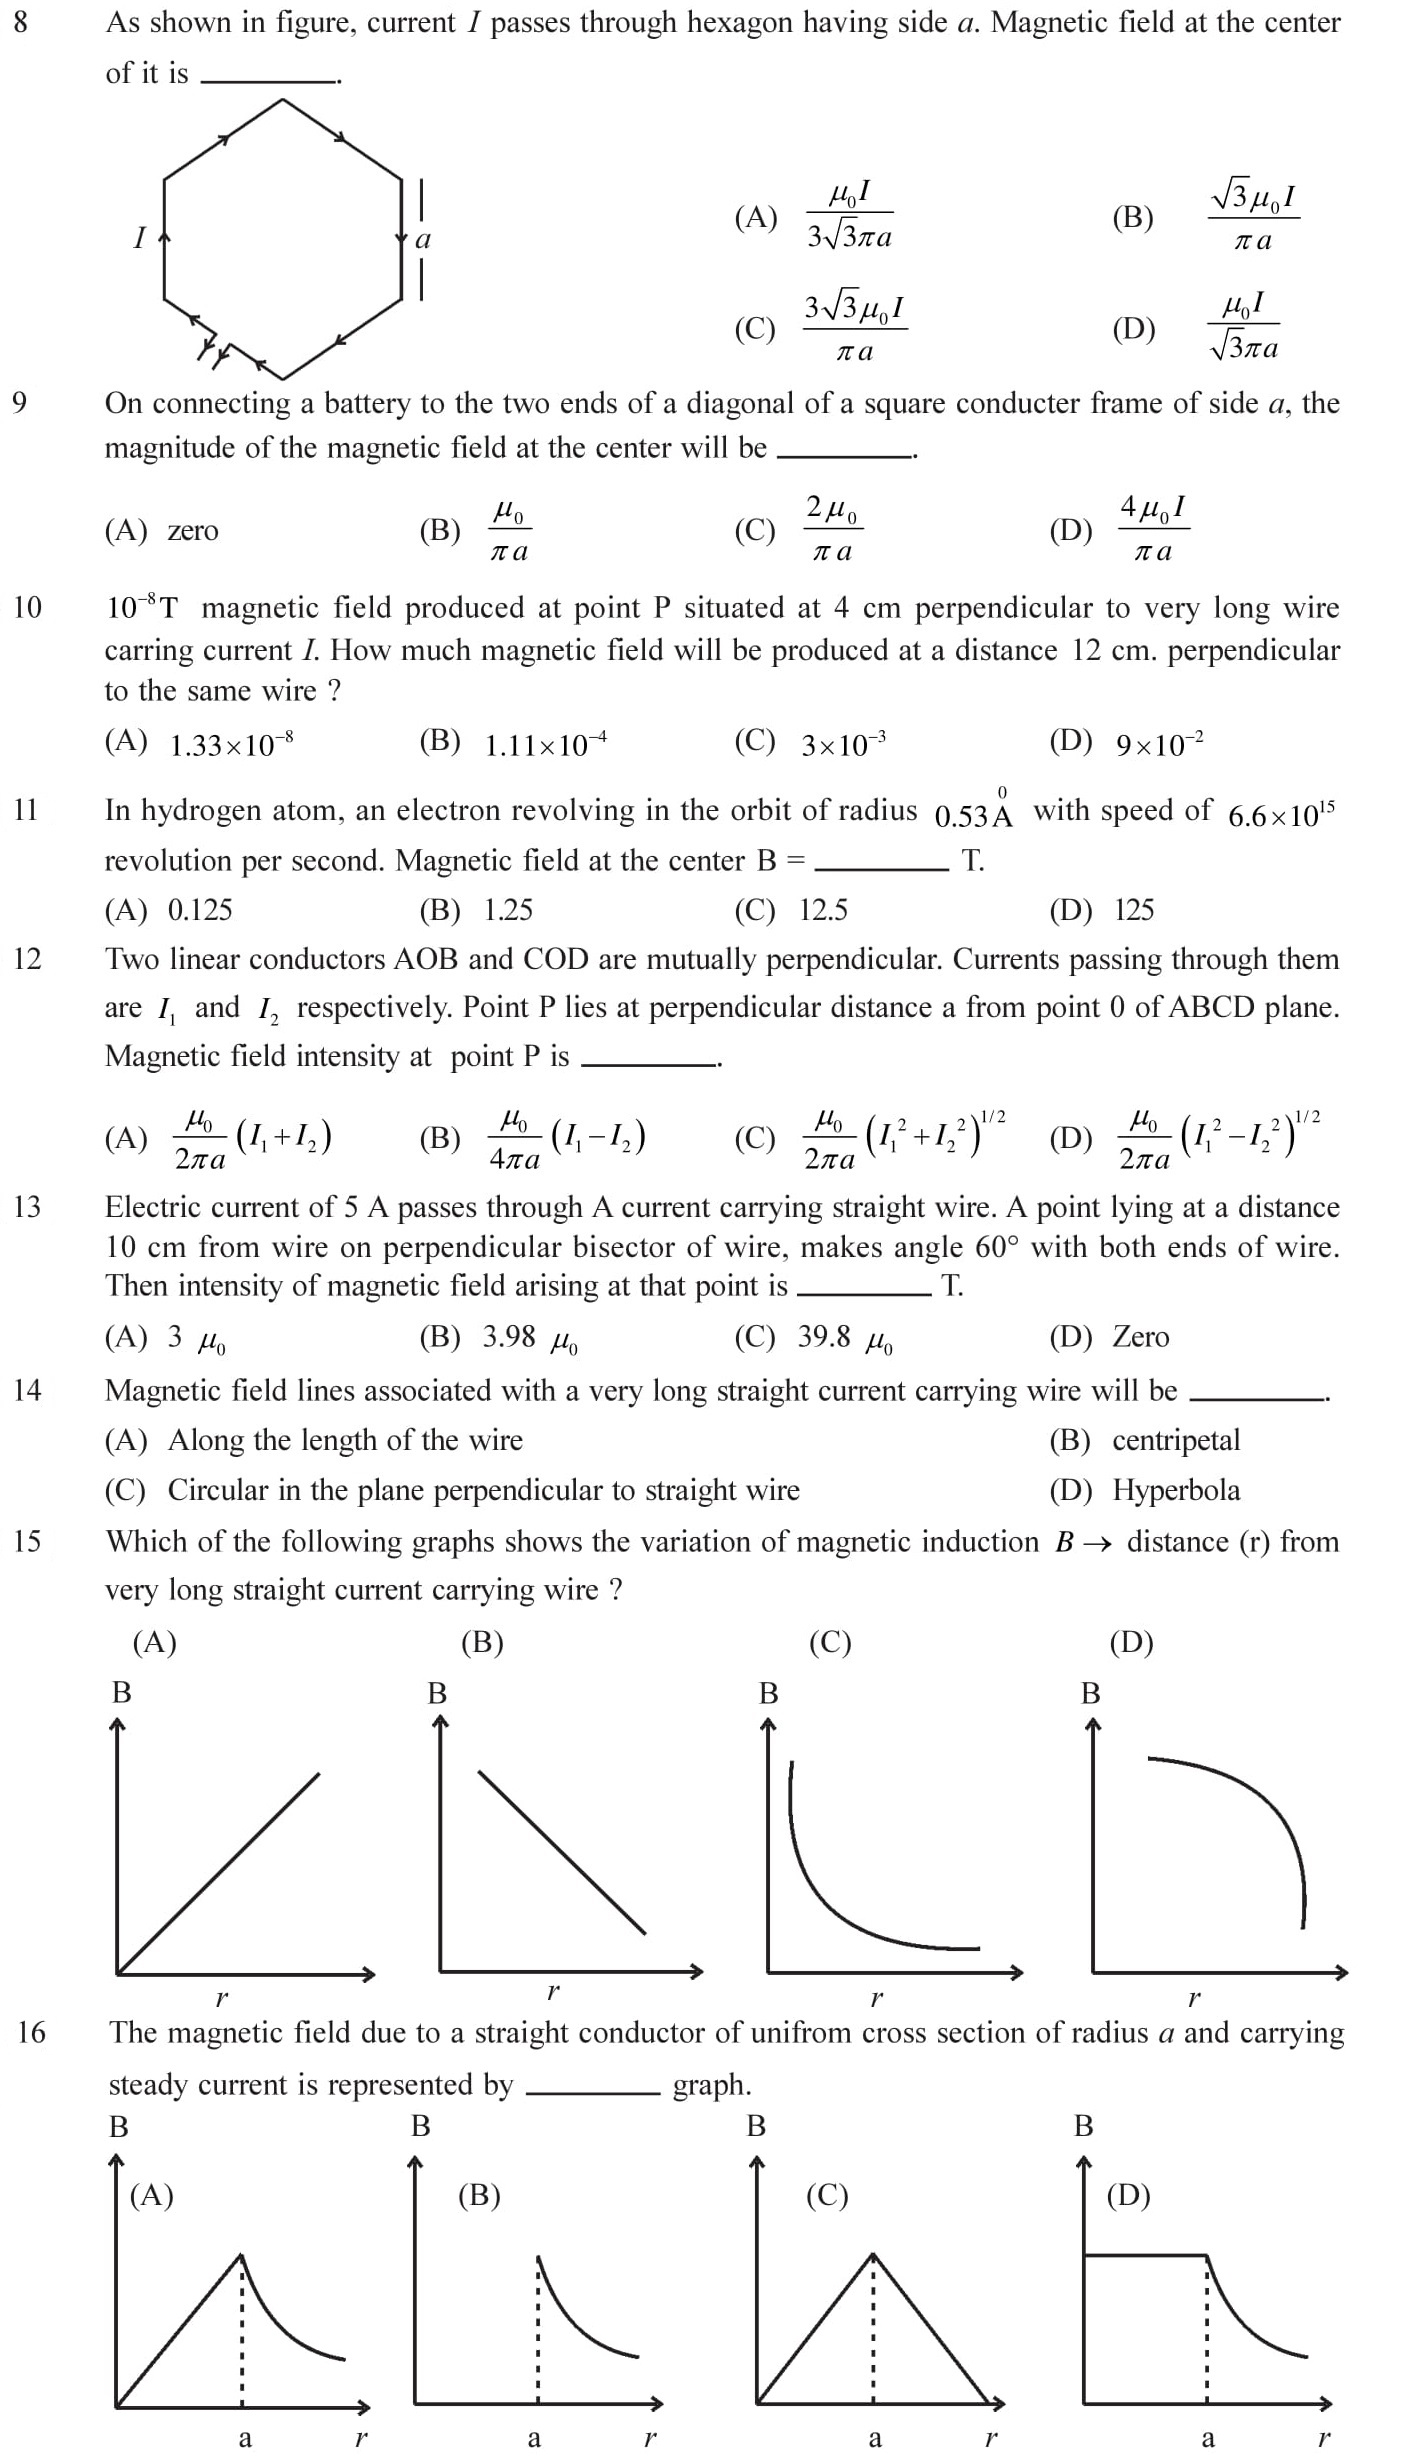 12-Physics-Moving-Charges-Magnetism-NEET-JEE-IIT-Questions-Topic-3